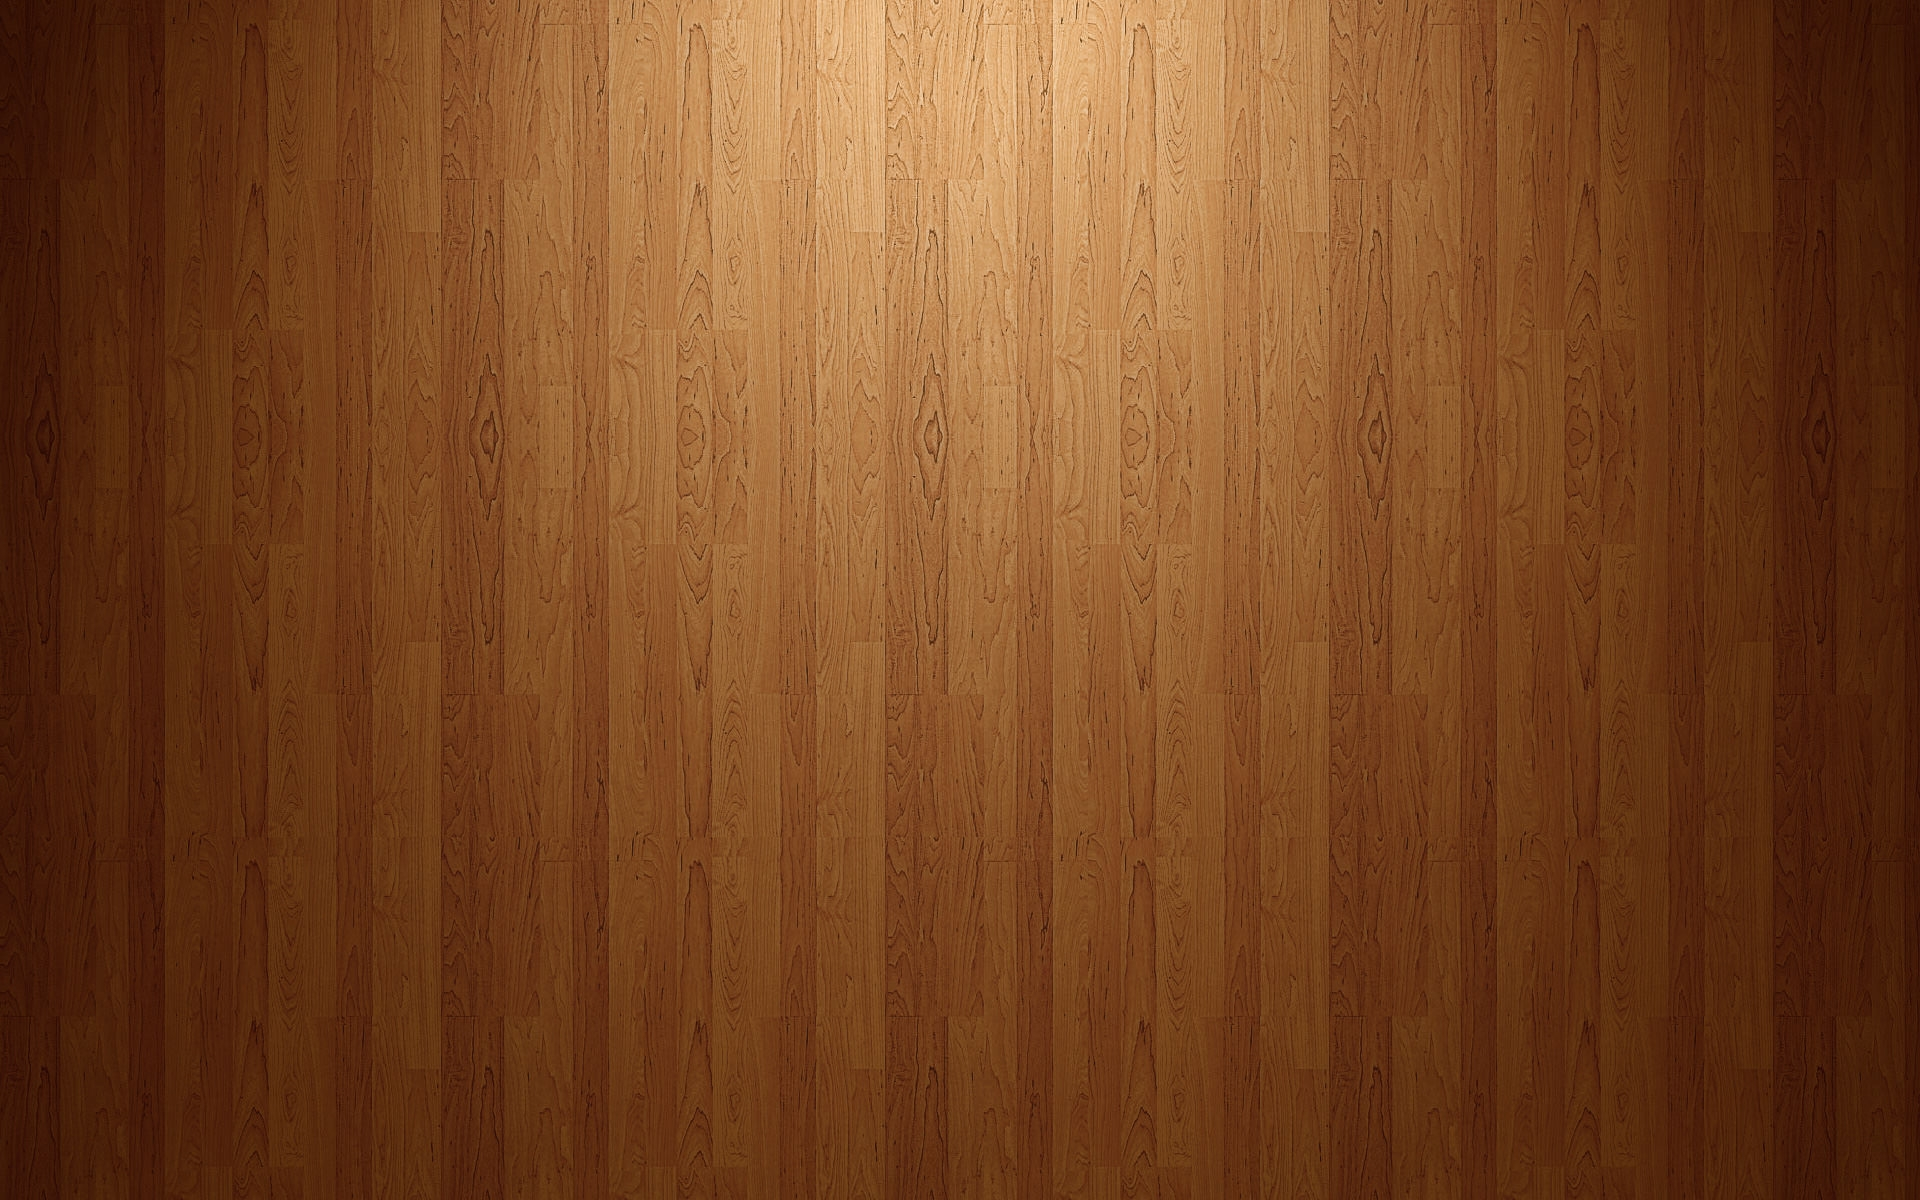 25 wood floor backgrounds freecreatives for Which floor or what floor